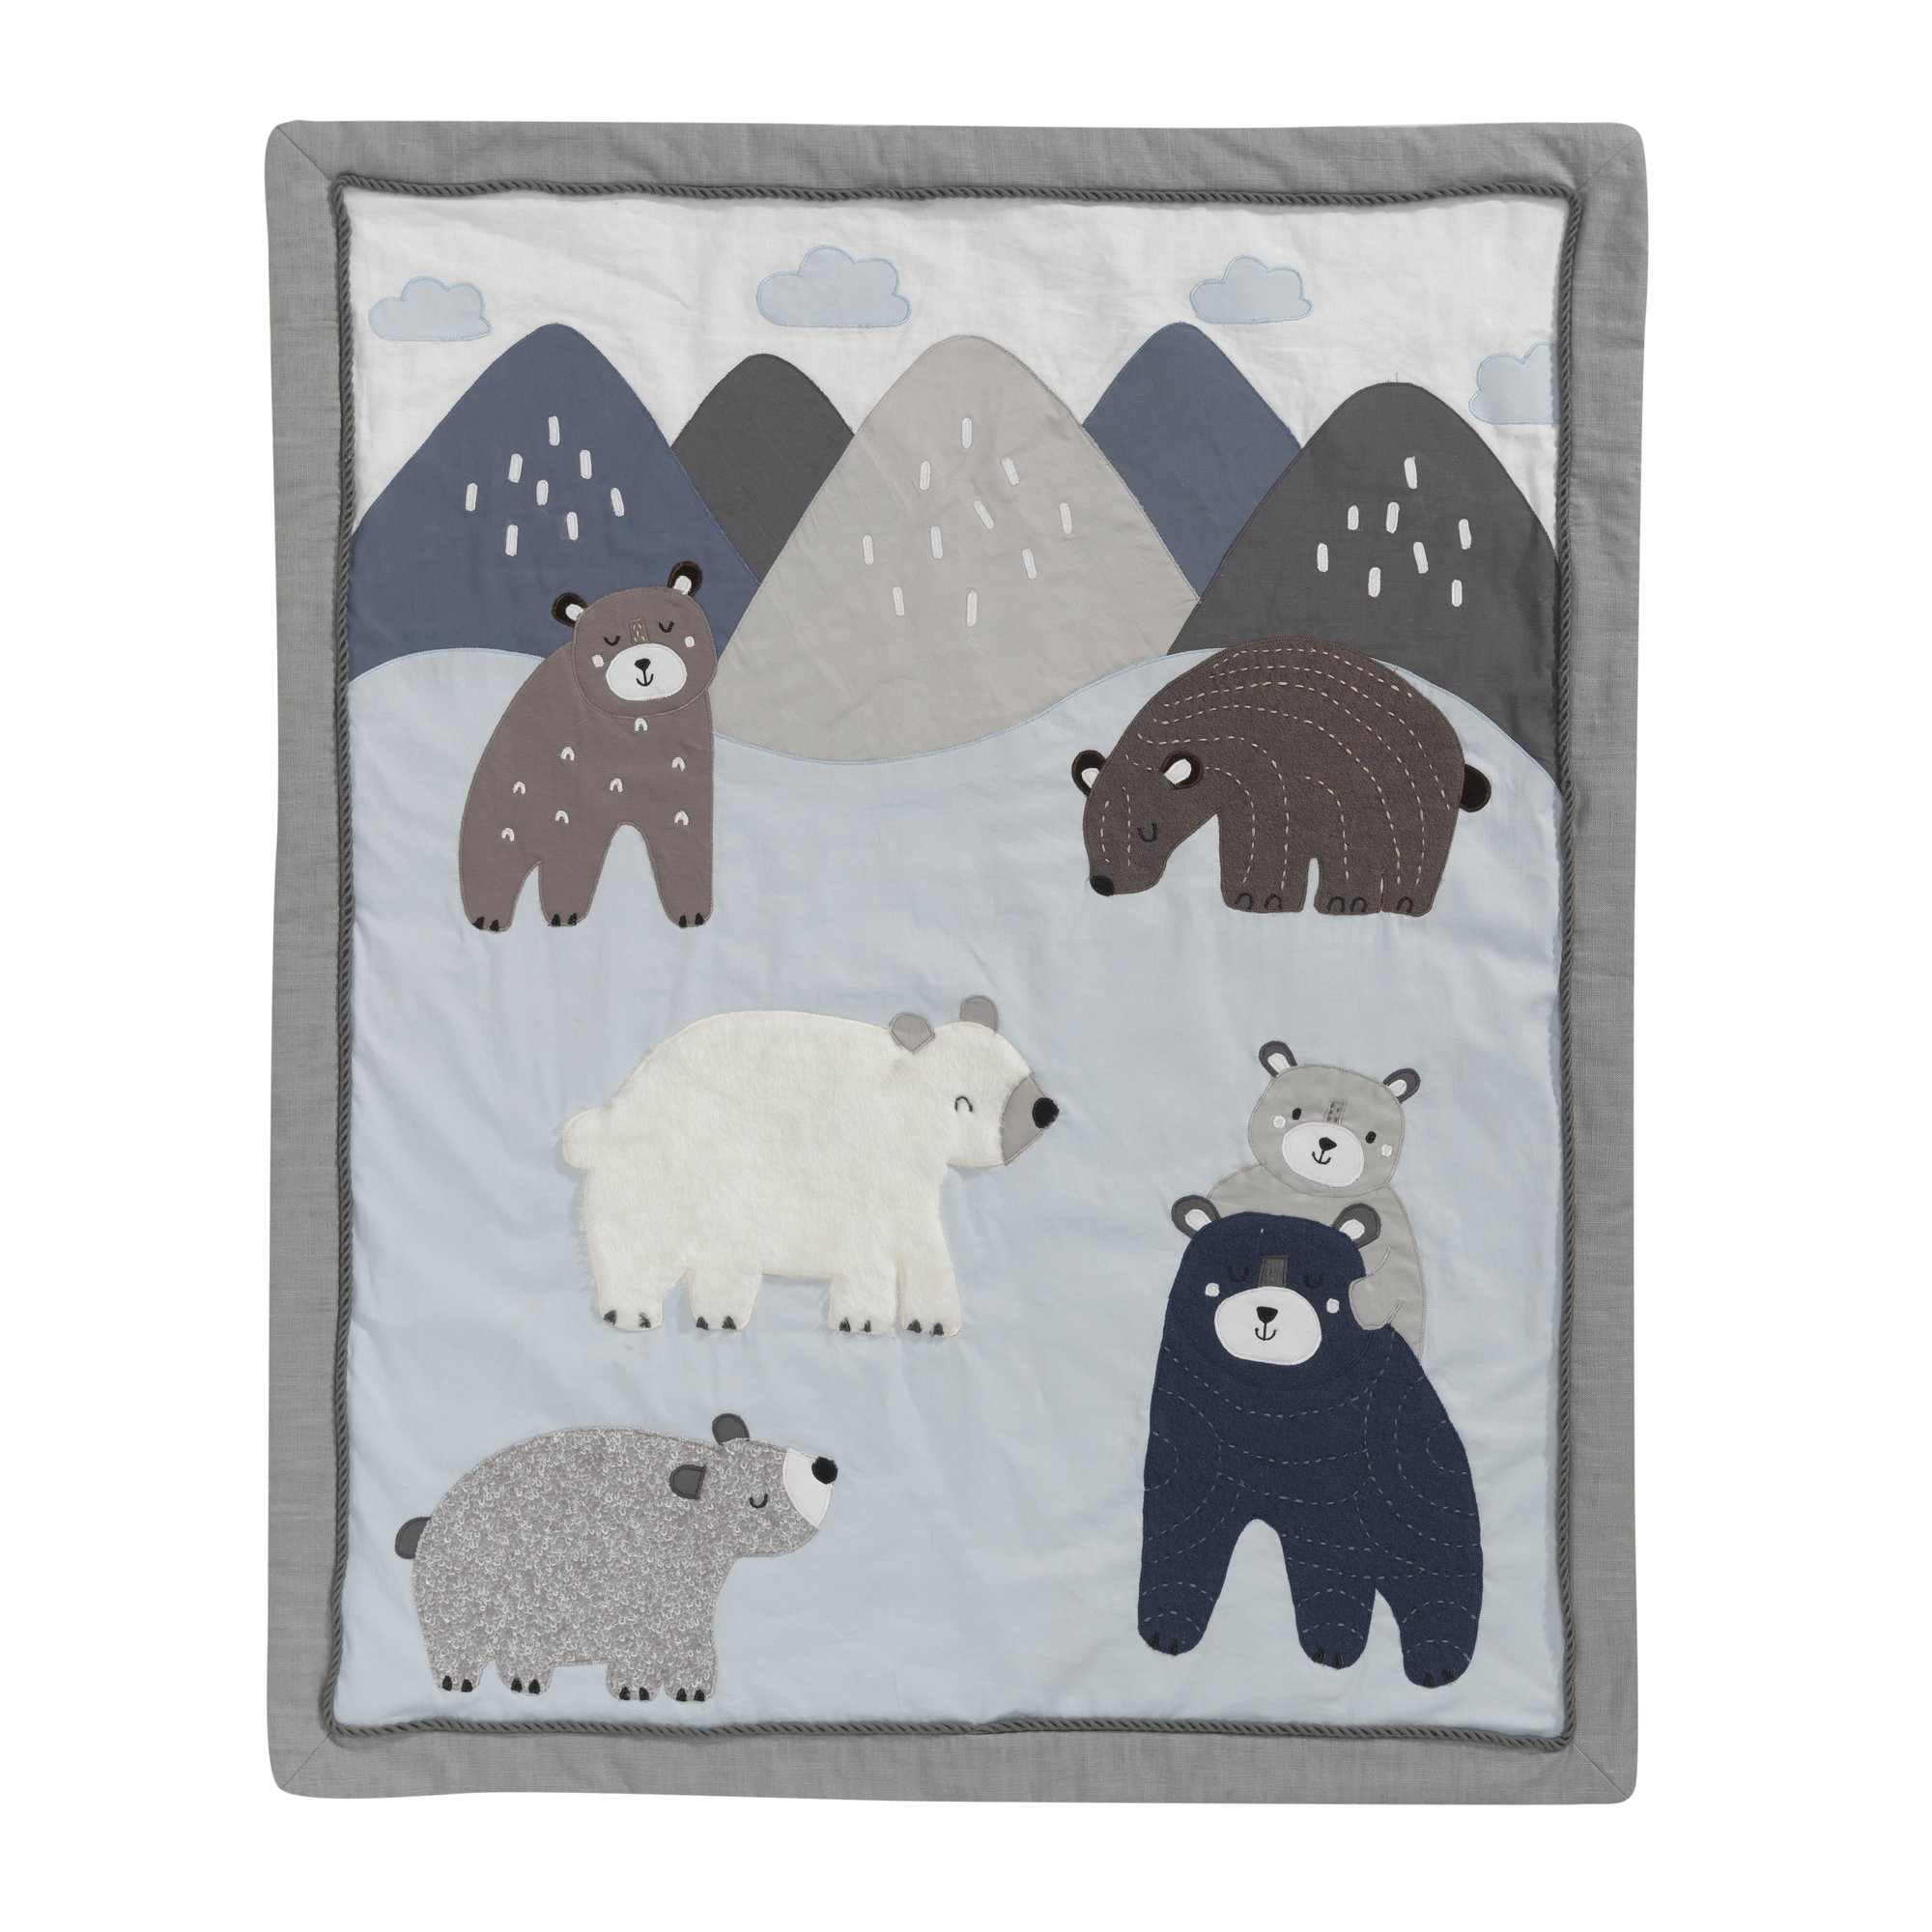 Lambs & Ivy Montana Blue/Gray Bears and Mountains Crib/Toddler Quilt/Comforter